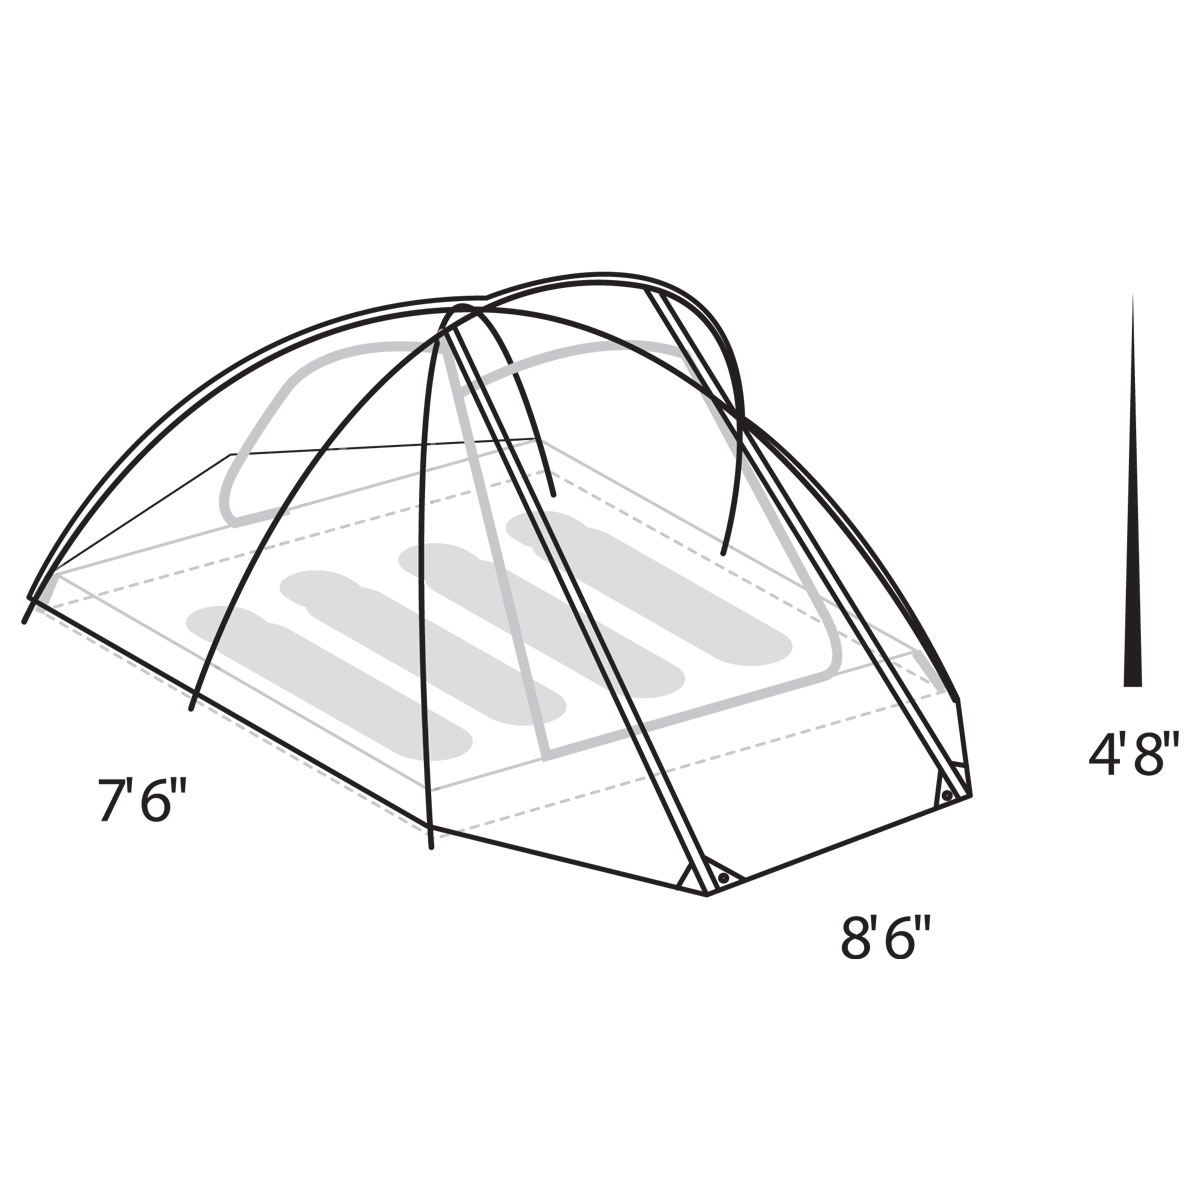 1  sc 1 st  Tents - Johnson Outdoors & Assault Outfitter 4 Person Tent | Eureka!